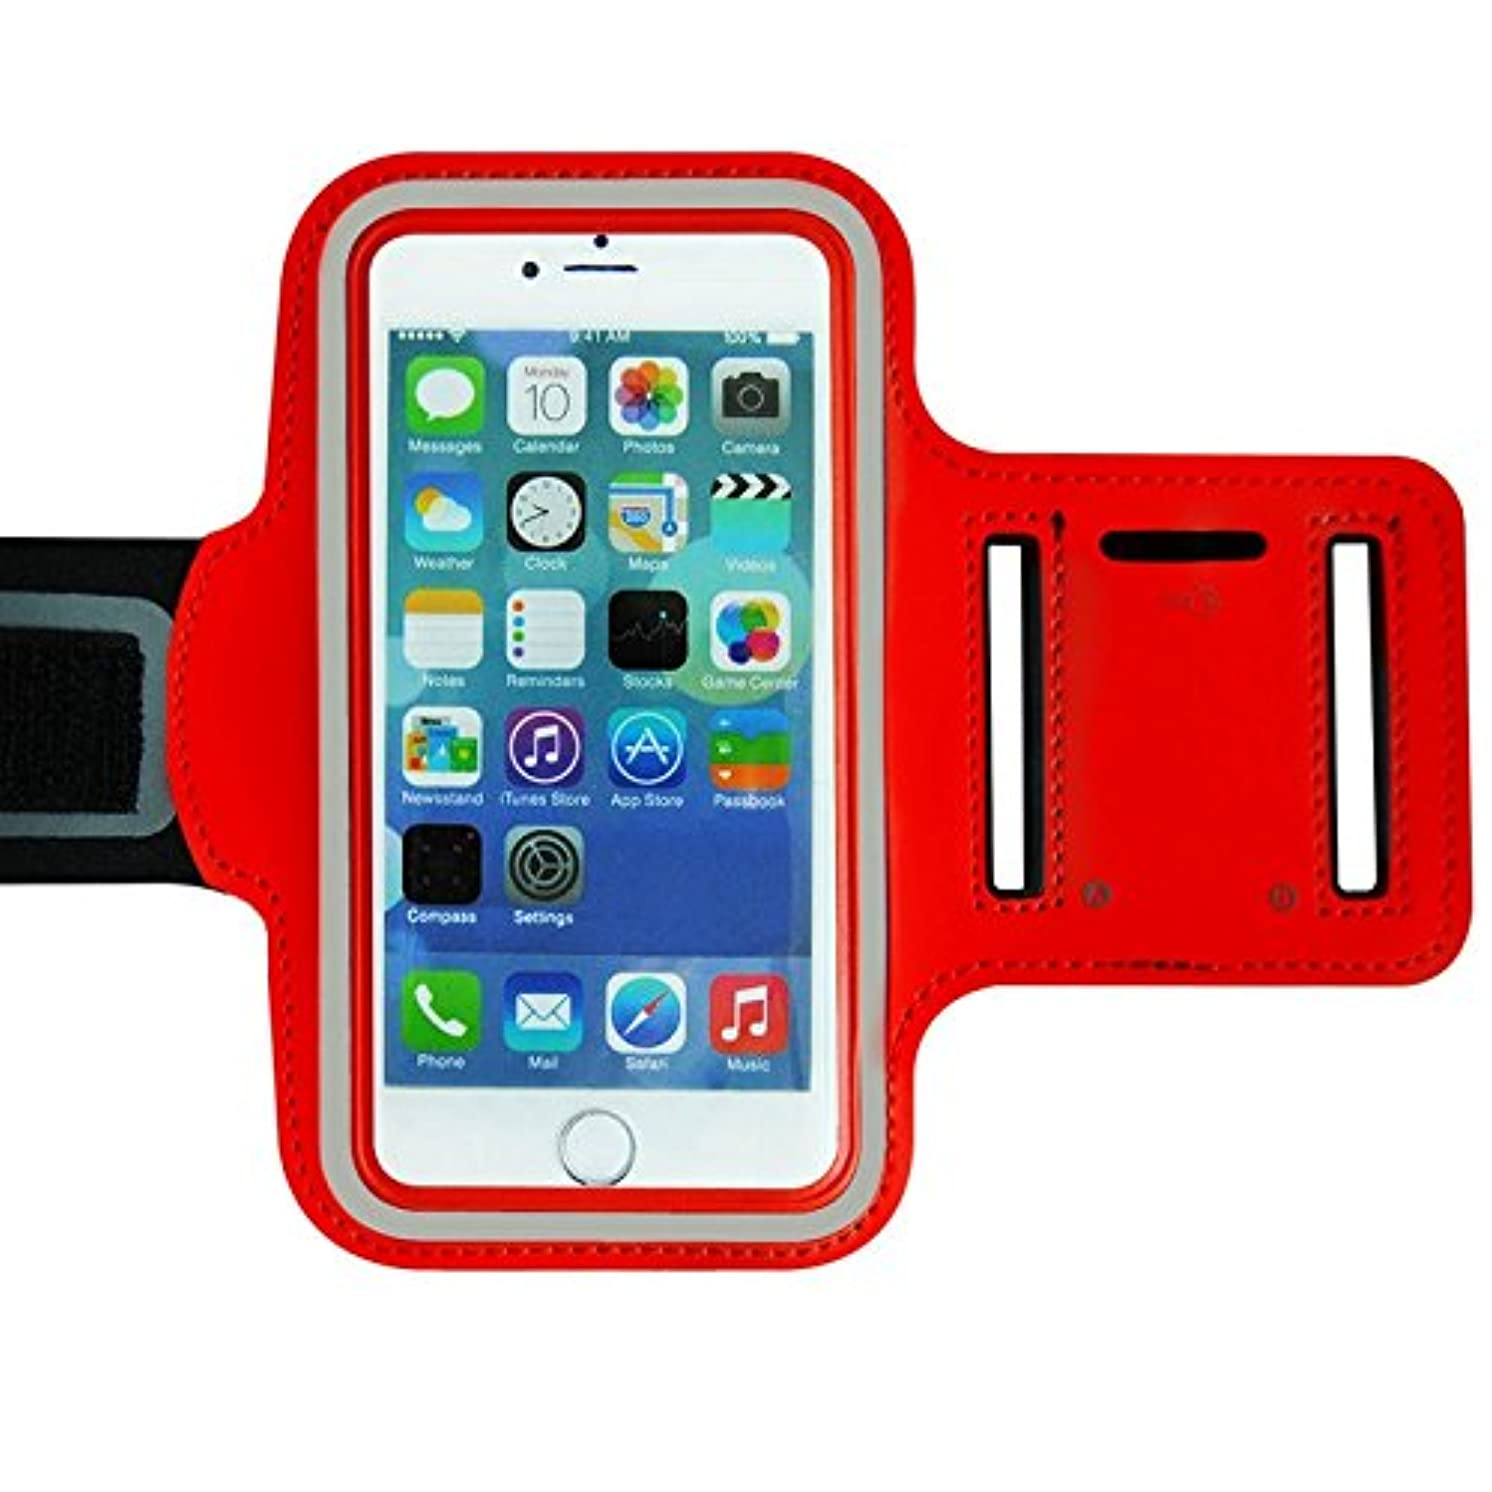 Red Armband Exercise Workout Case with Keyholder for Jogging fits Mophie Juice Pack Case on iPhone 5s, 5c. for Arms up to 12 inches Big, Works Best with no Cover on Your Phone.